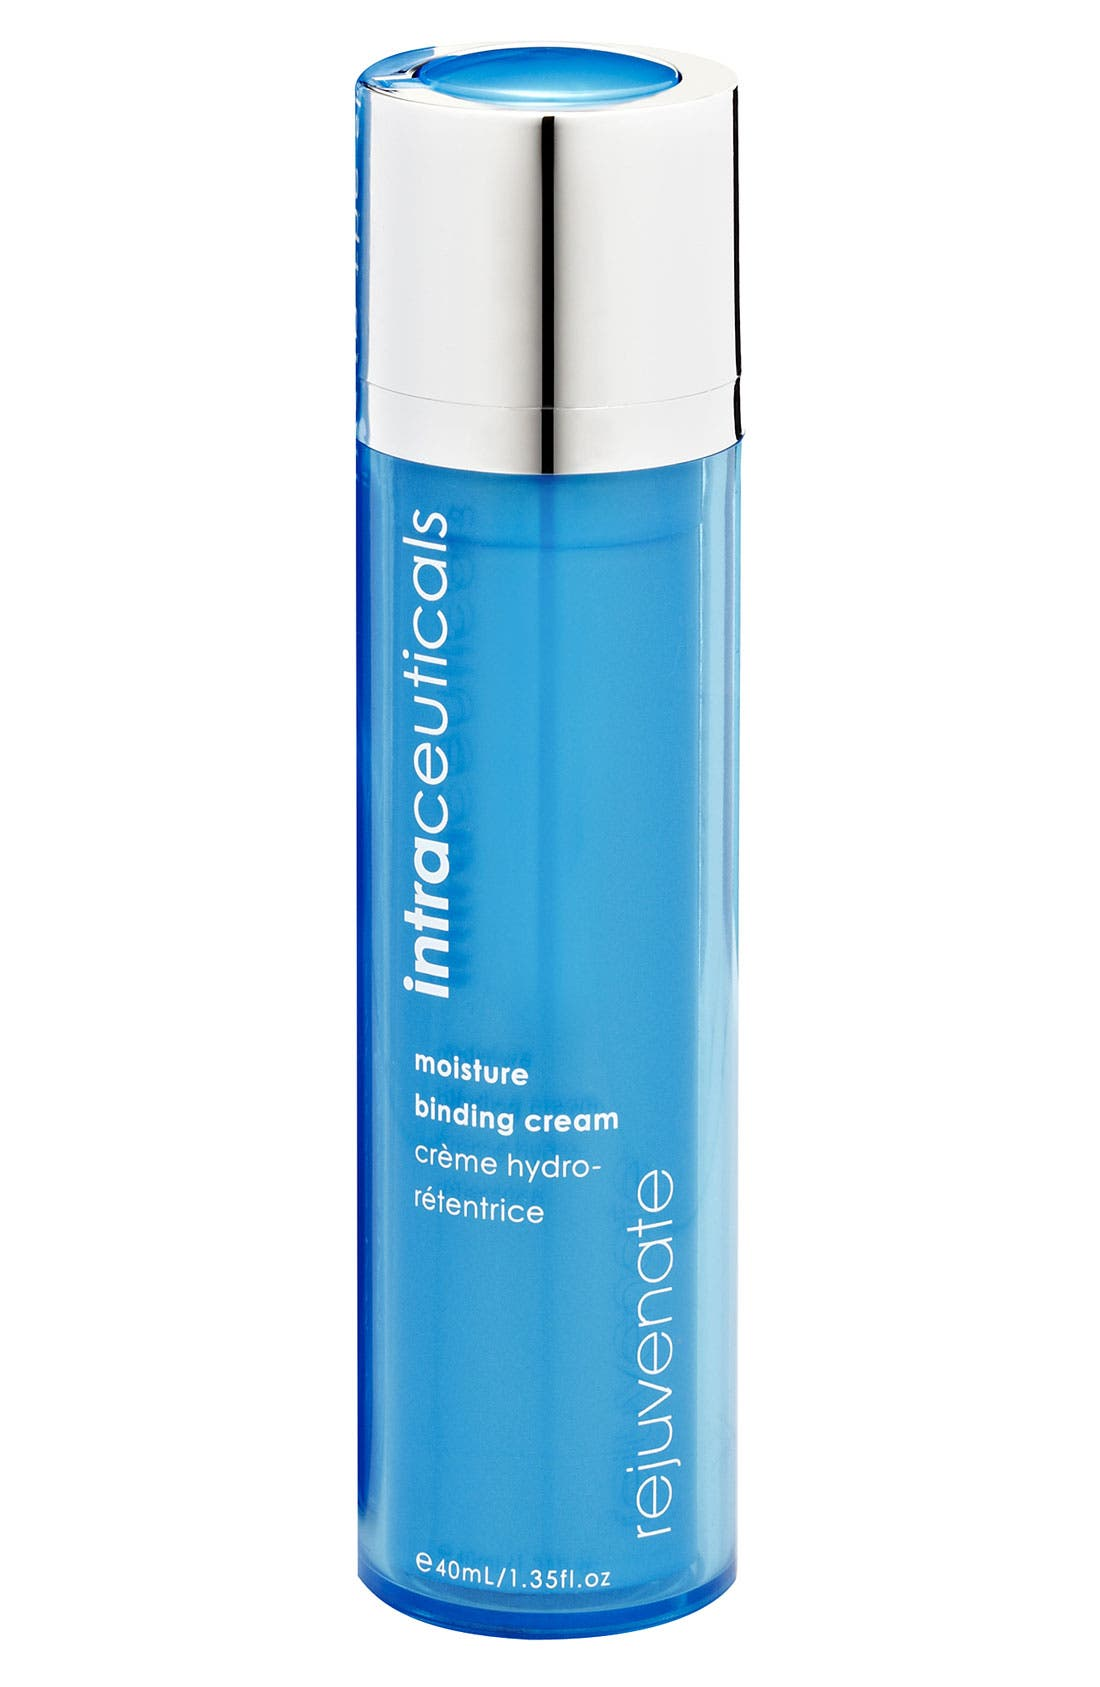 intraceuticals® 'Rejuvenate' Moisture Binding Cream